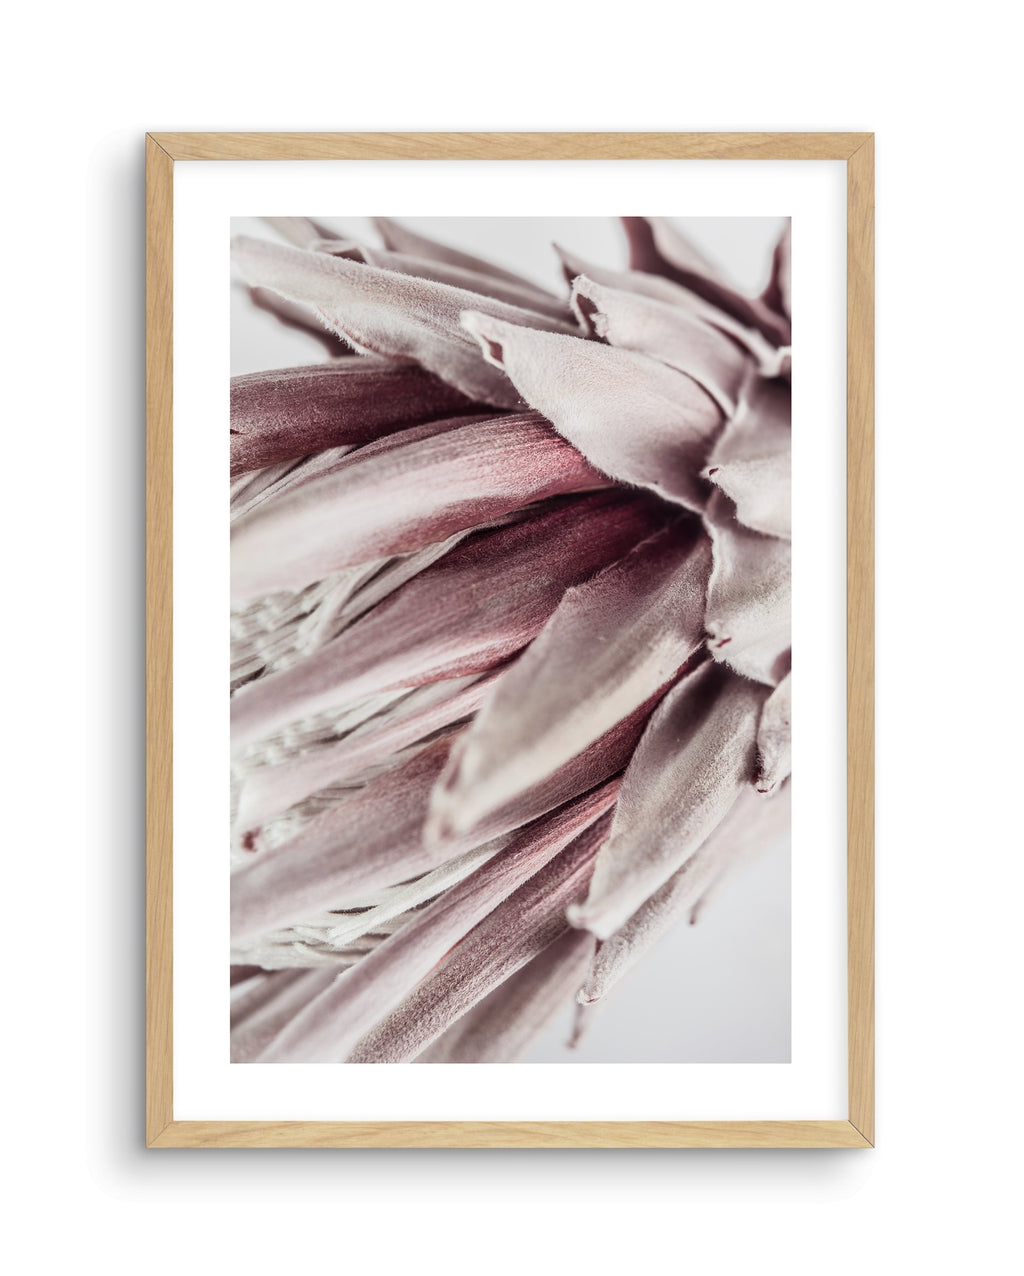 Abstract Protea No II - Olive et Oriel | Shop Art Prints & Posters Online